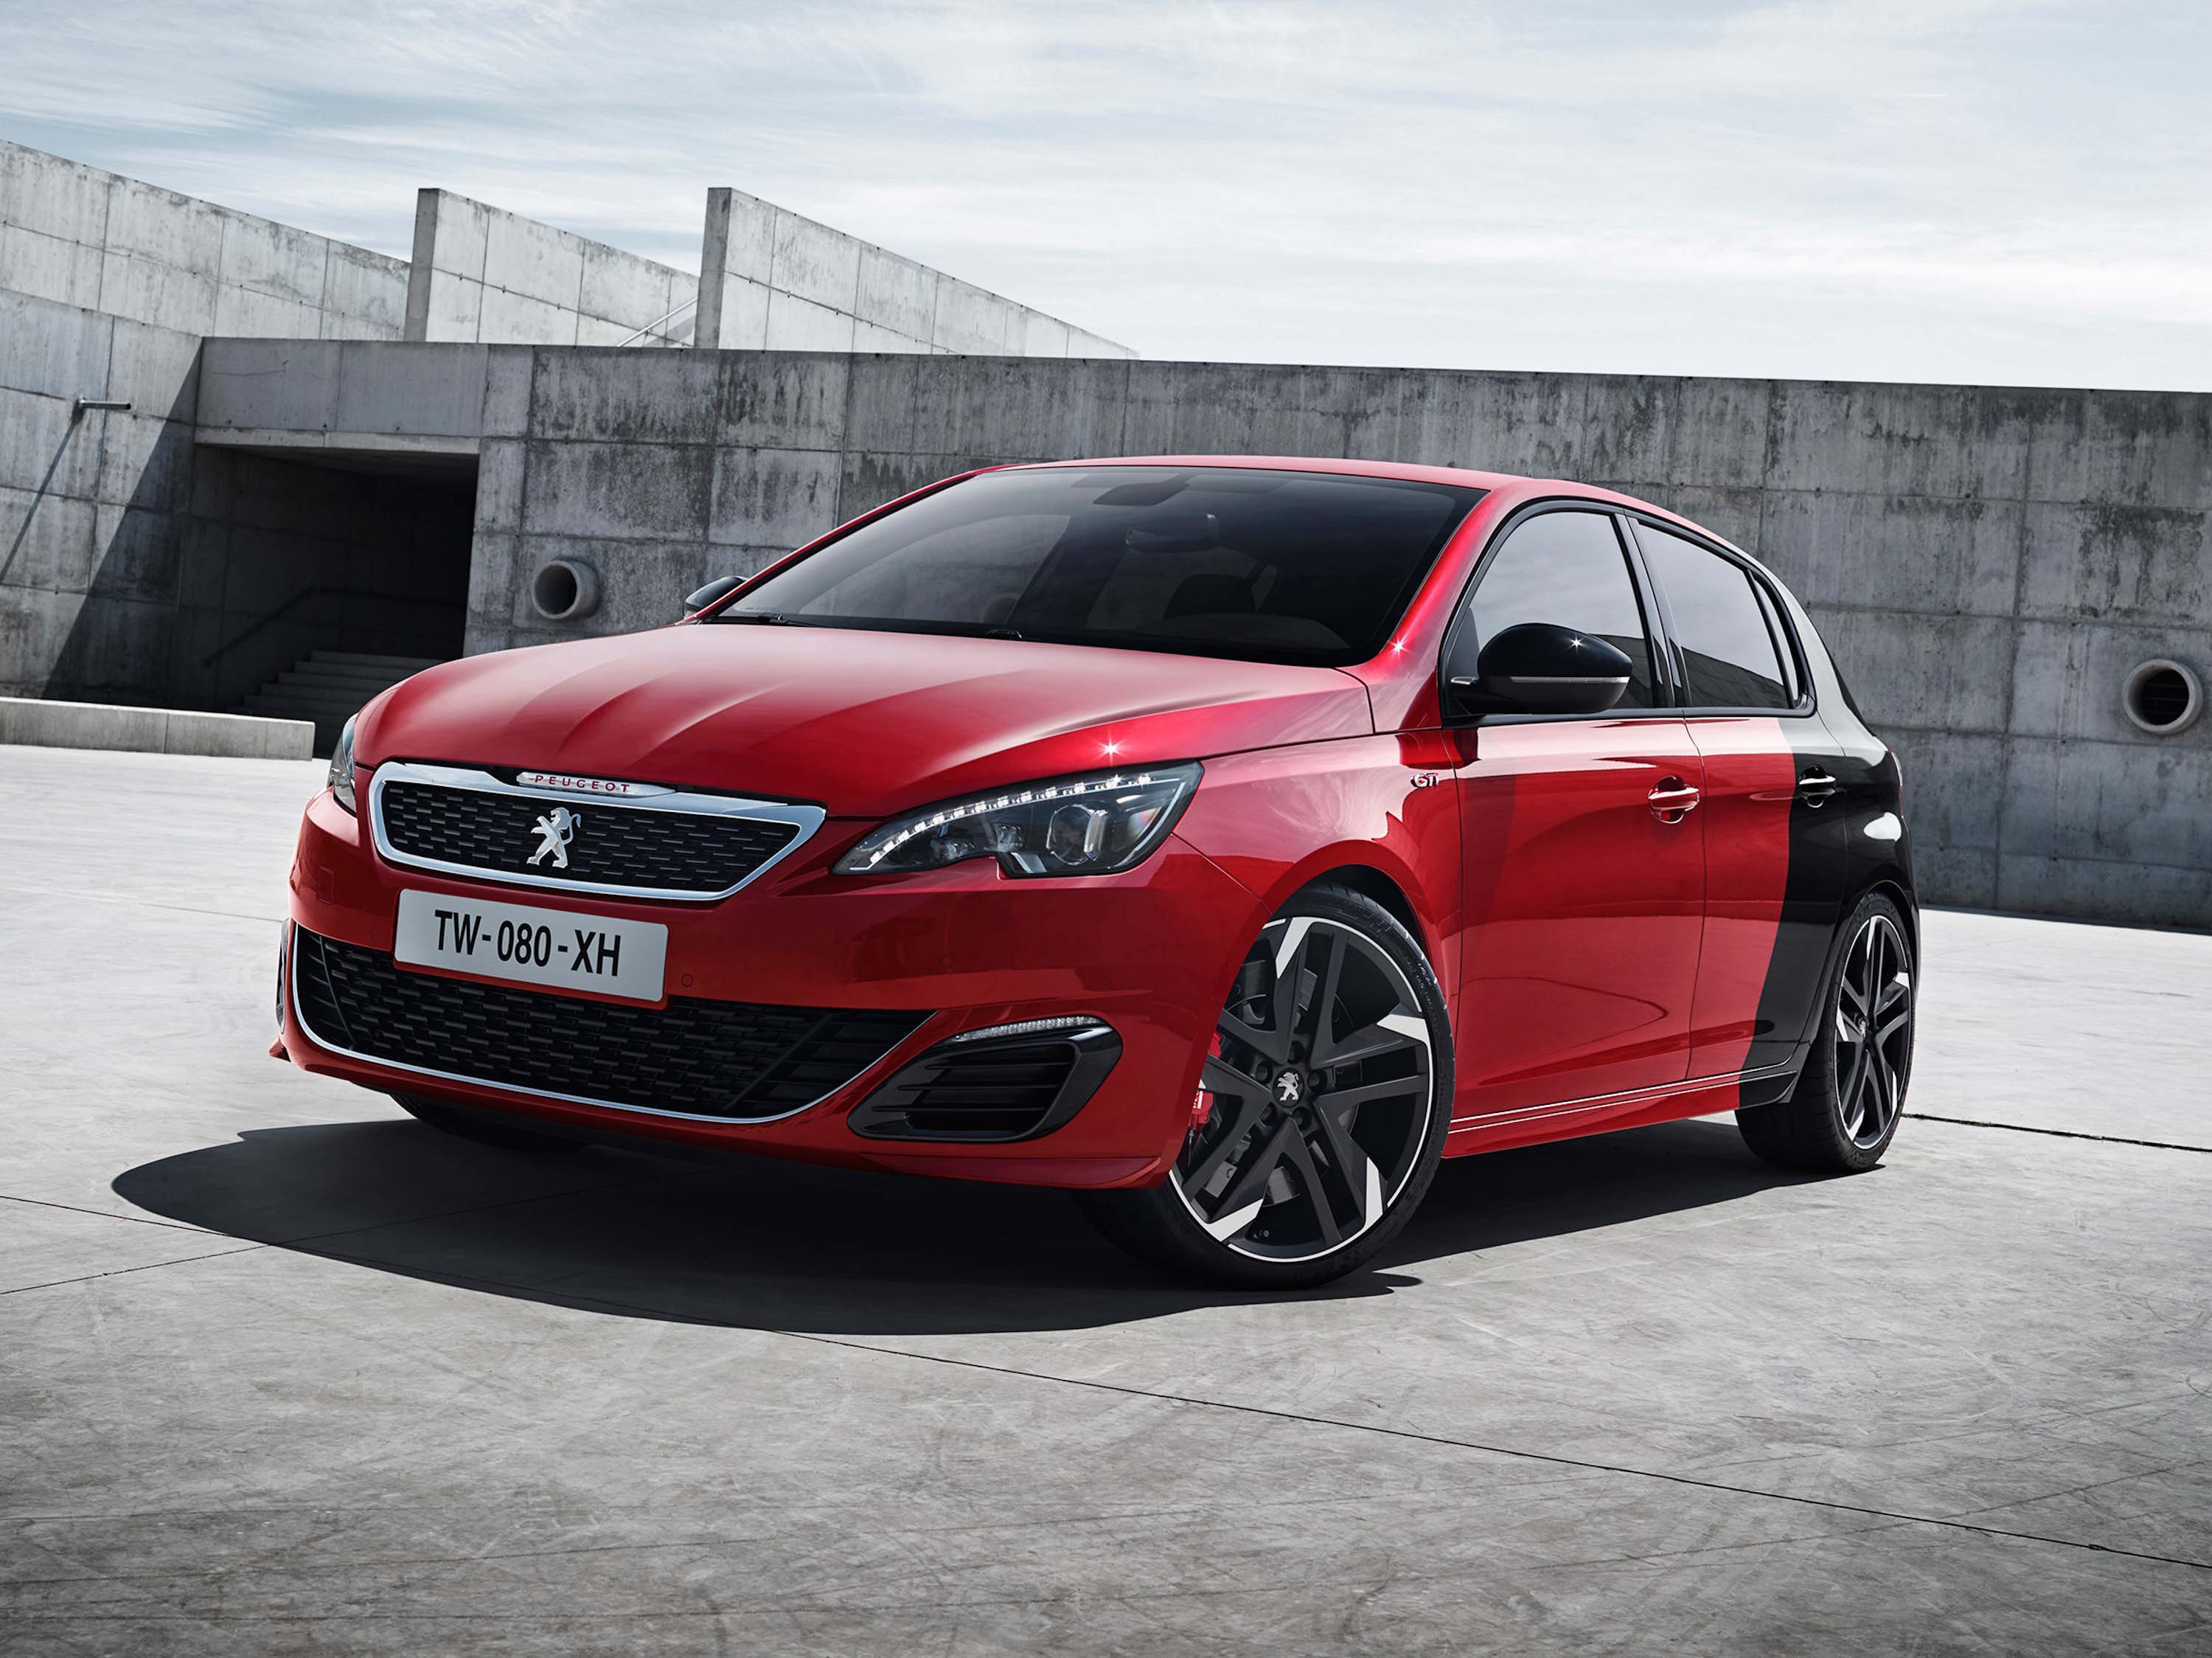 t9 peugeot 308 gti photo gallery between the axles. Black Bedroom Furniture Sets. Home Design Ideas